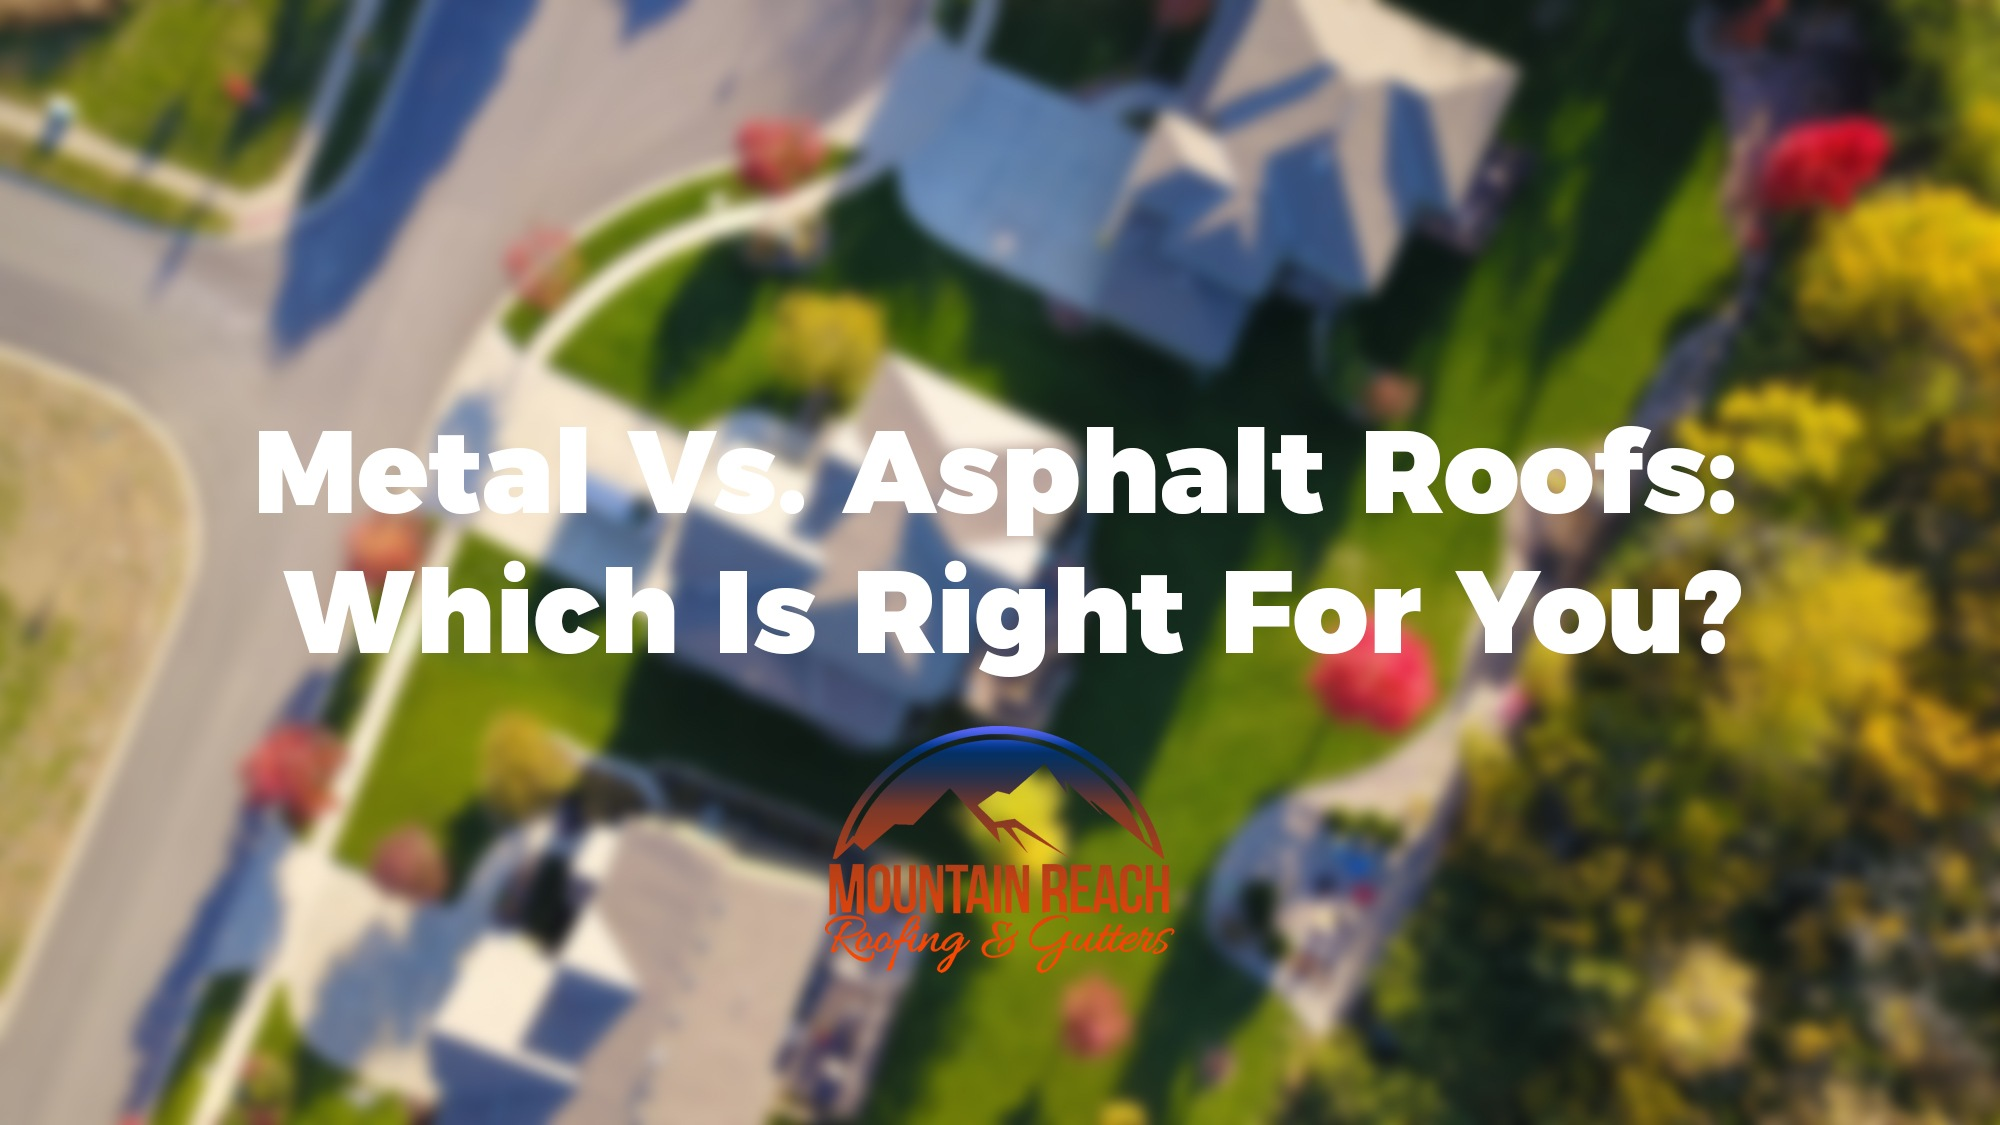 Metal Vs. Asphalt Roofs: Which Is Right For You?